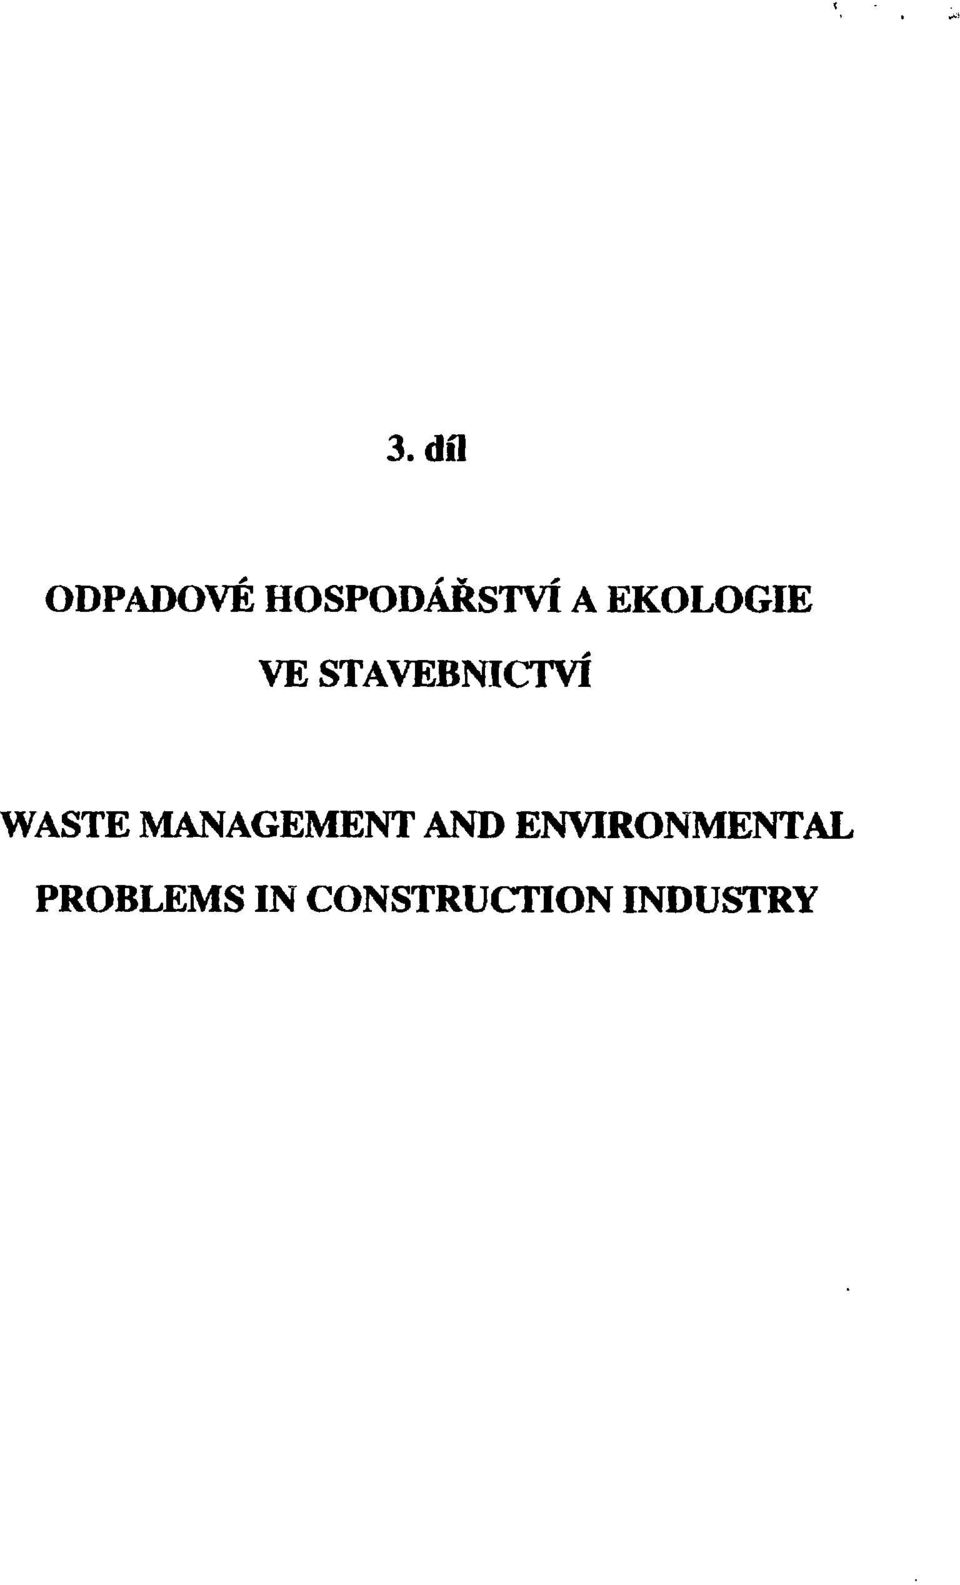 MANAGEMENT AND ENVIRONMENTAL